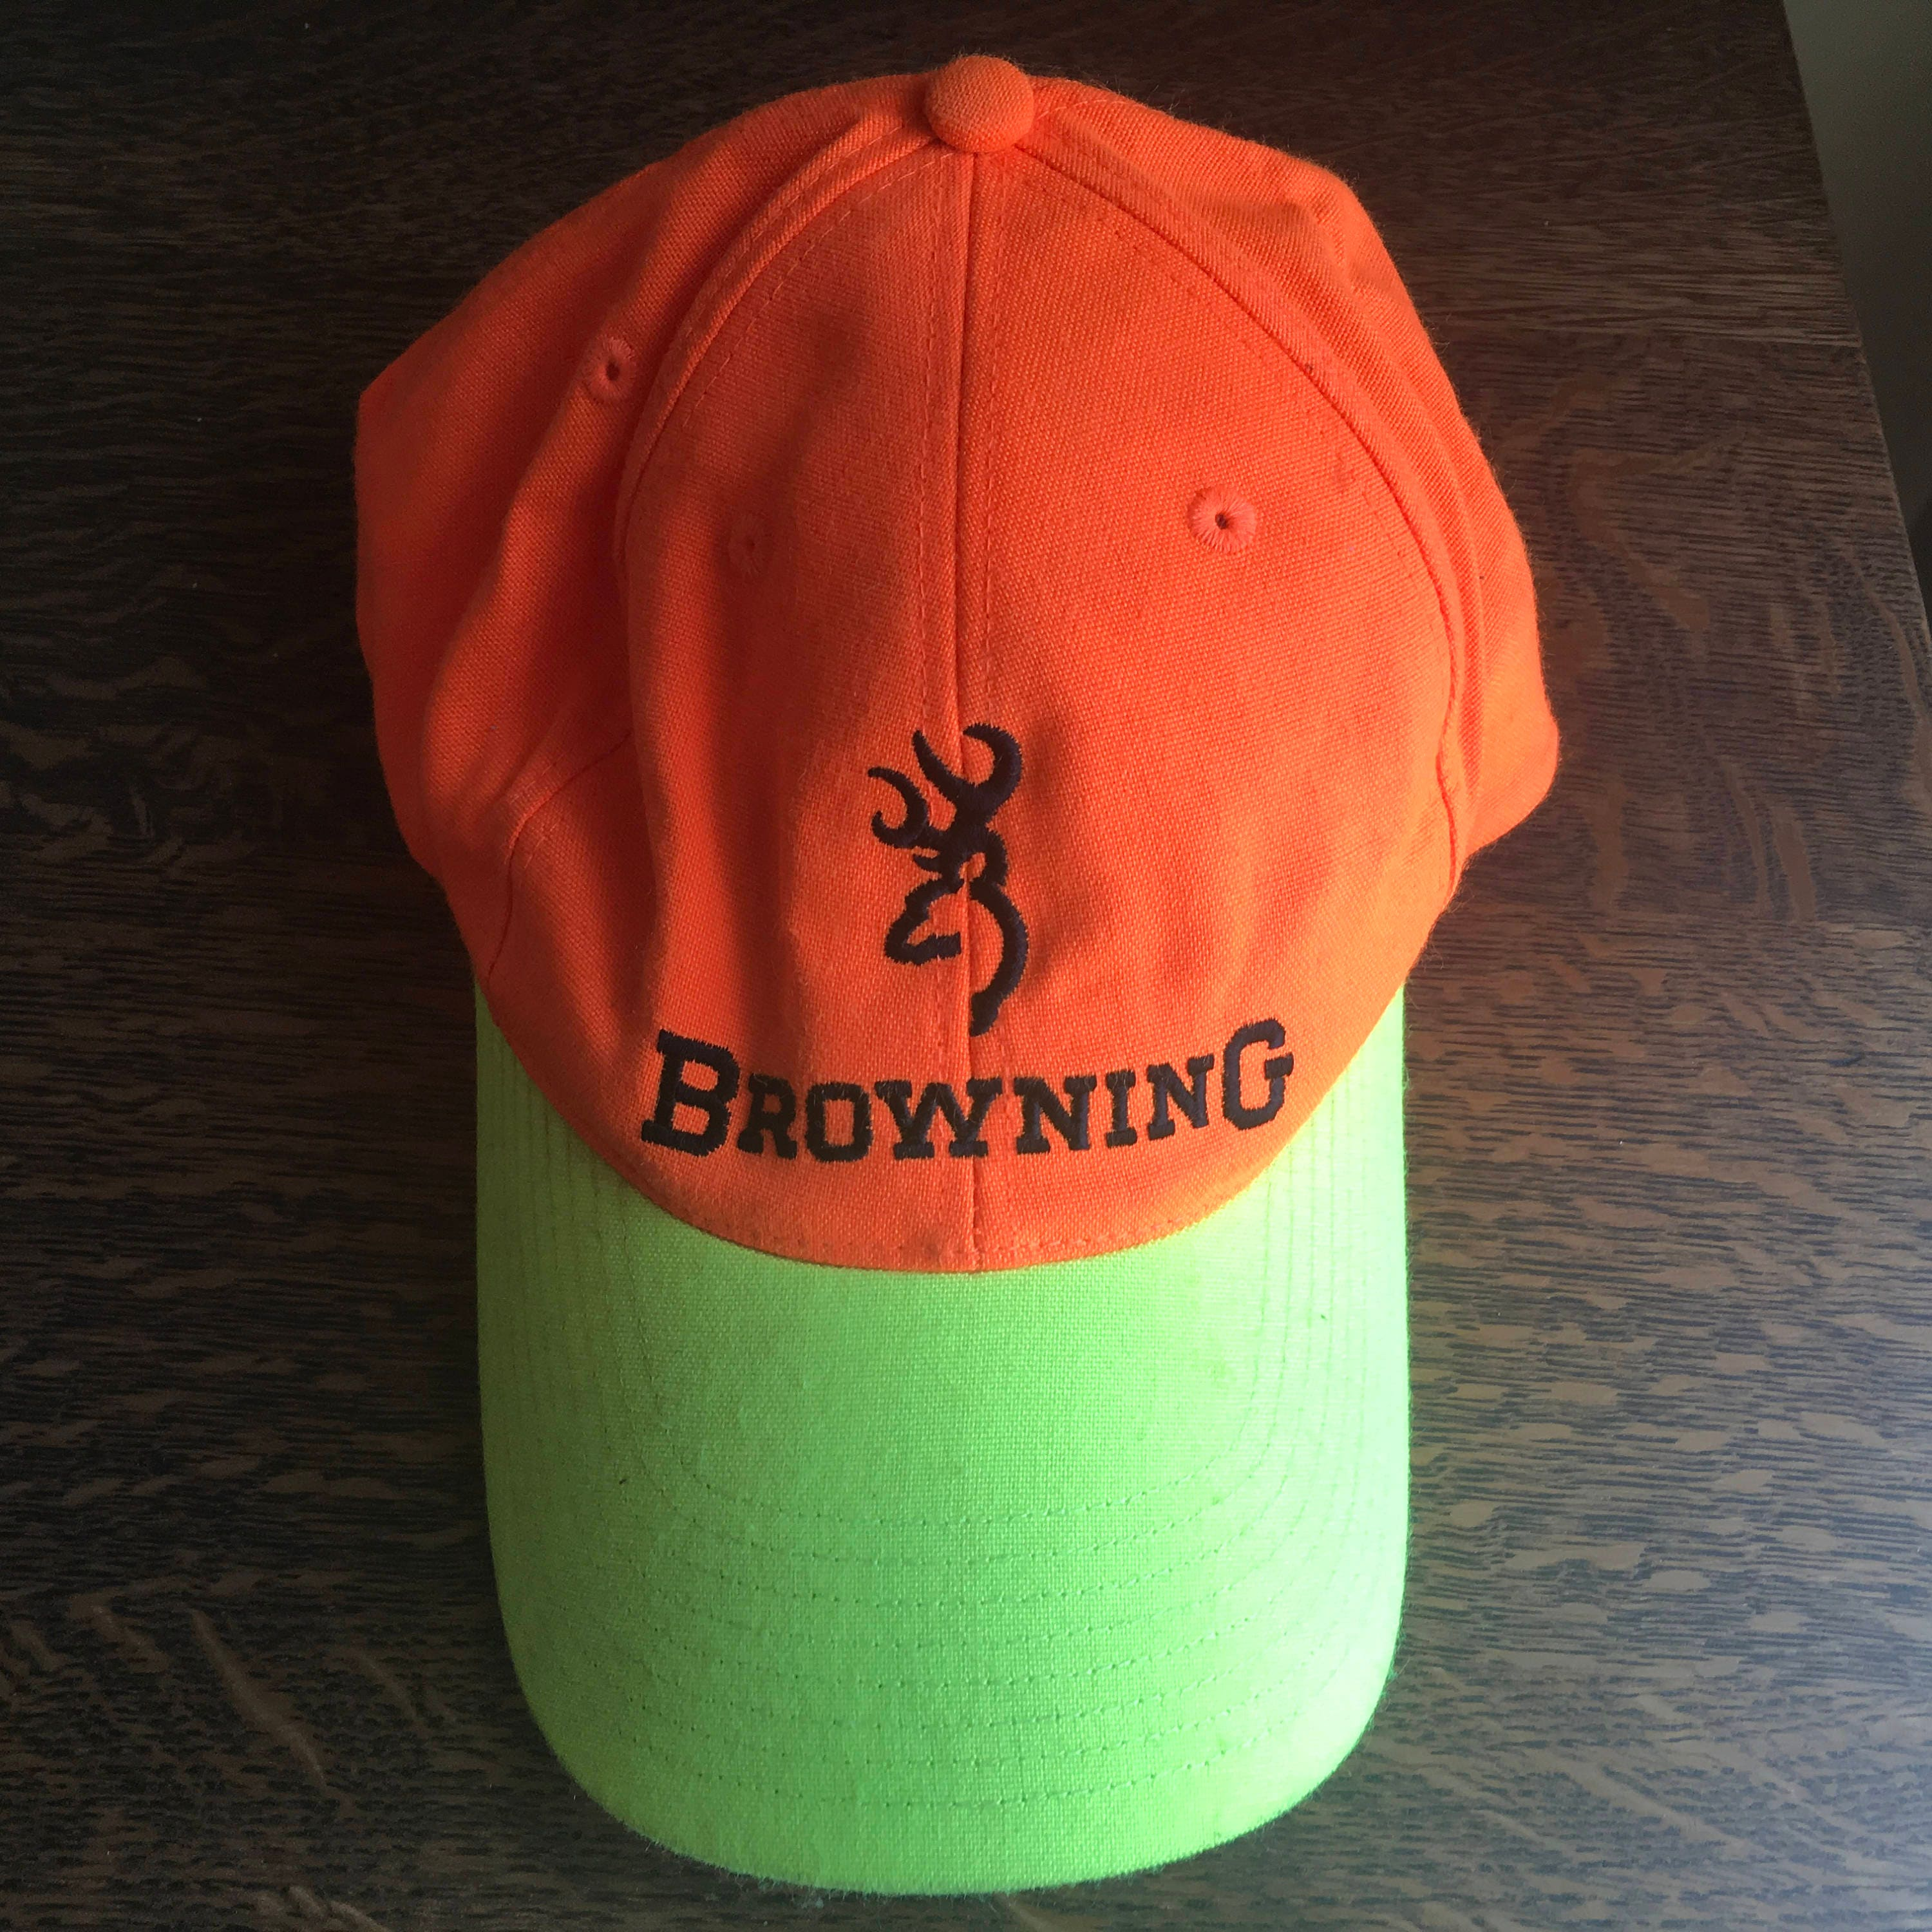 7d02e79ff6fb4 ... sale france browning hunting cap blaze orange and chartreuse green  baseball truckers hat 9e9d4 25691 530bc